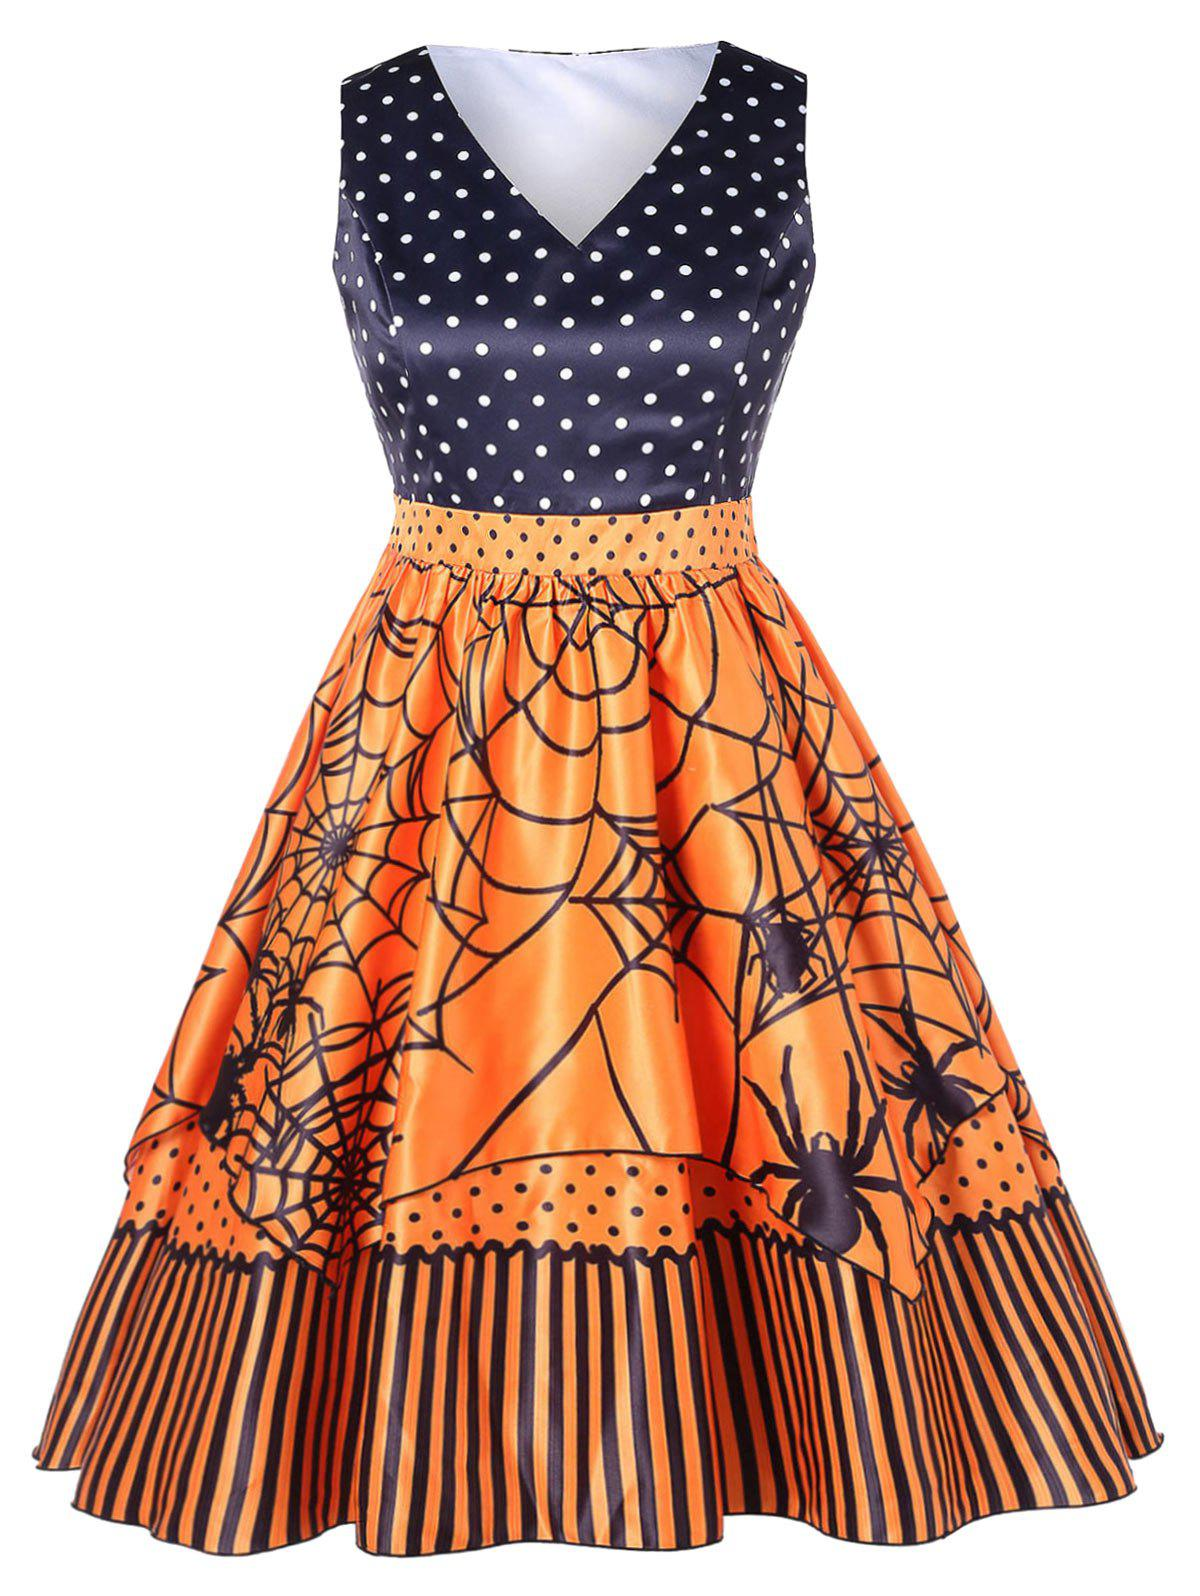 Fashion Polka Dot Plus Size Spider Print Halloween Vintage Dress